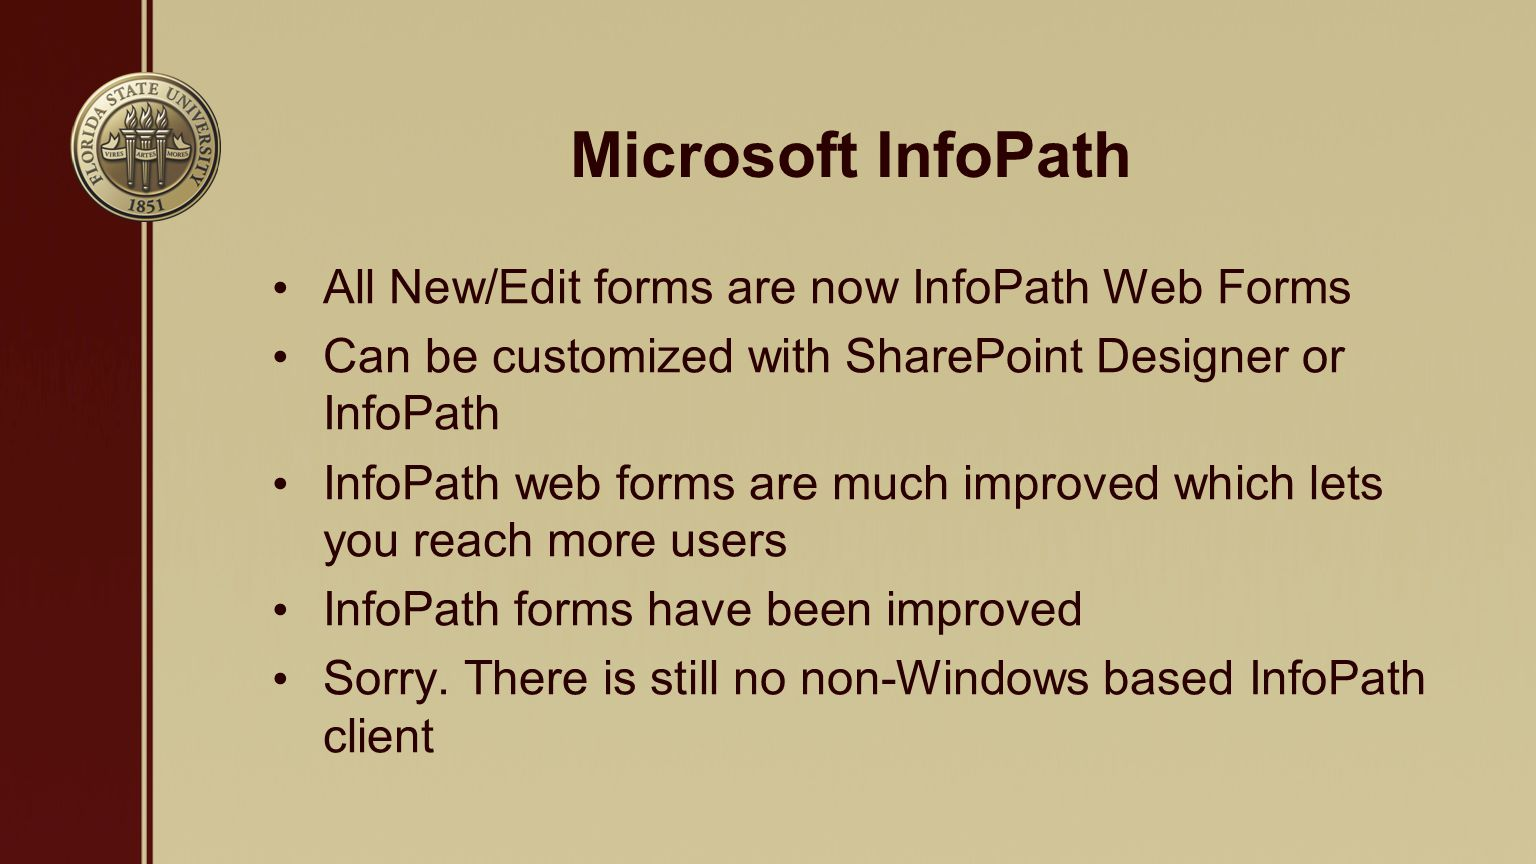 Microsoft InfoPath All New/Edit forms are now InfoPath Web Forms Can be customized with SharePoint Designer or InfoPath InfoPath web forms are much improved which lets you reach more users InfoPath forms have been improved Sorry.